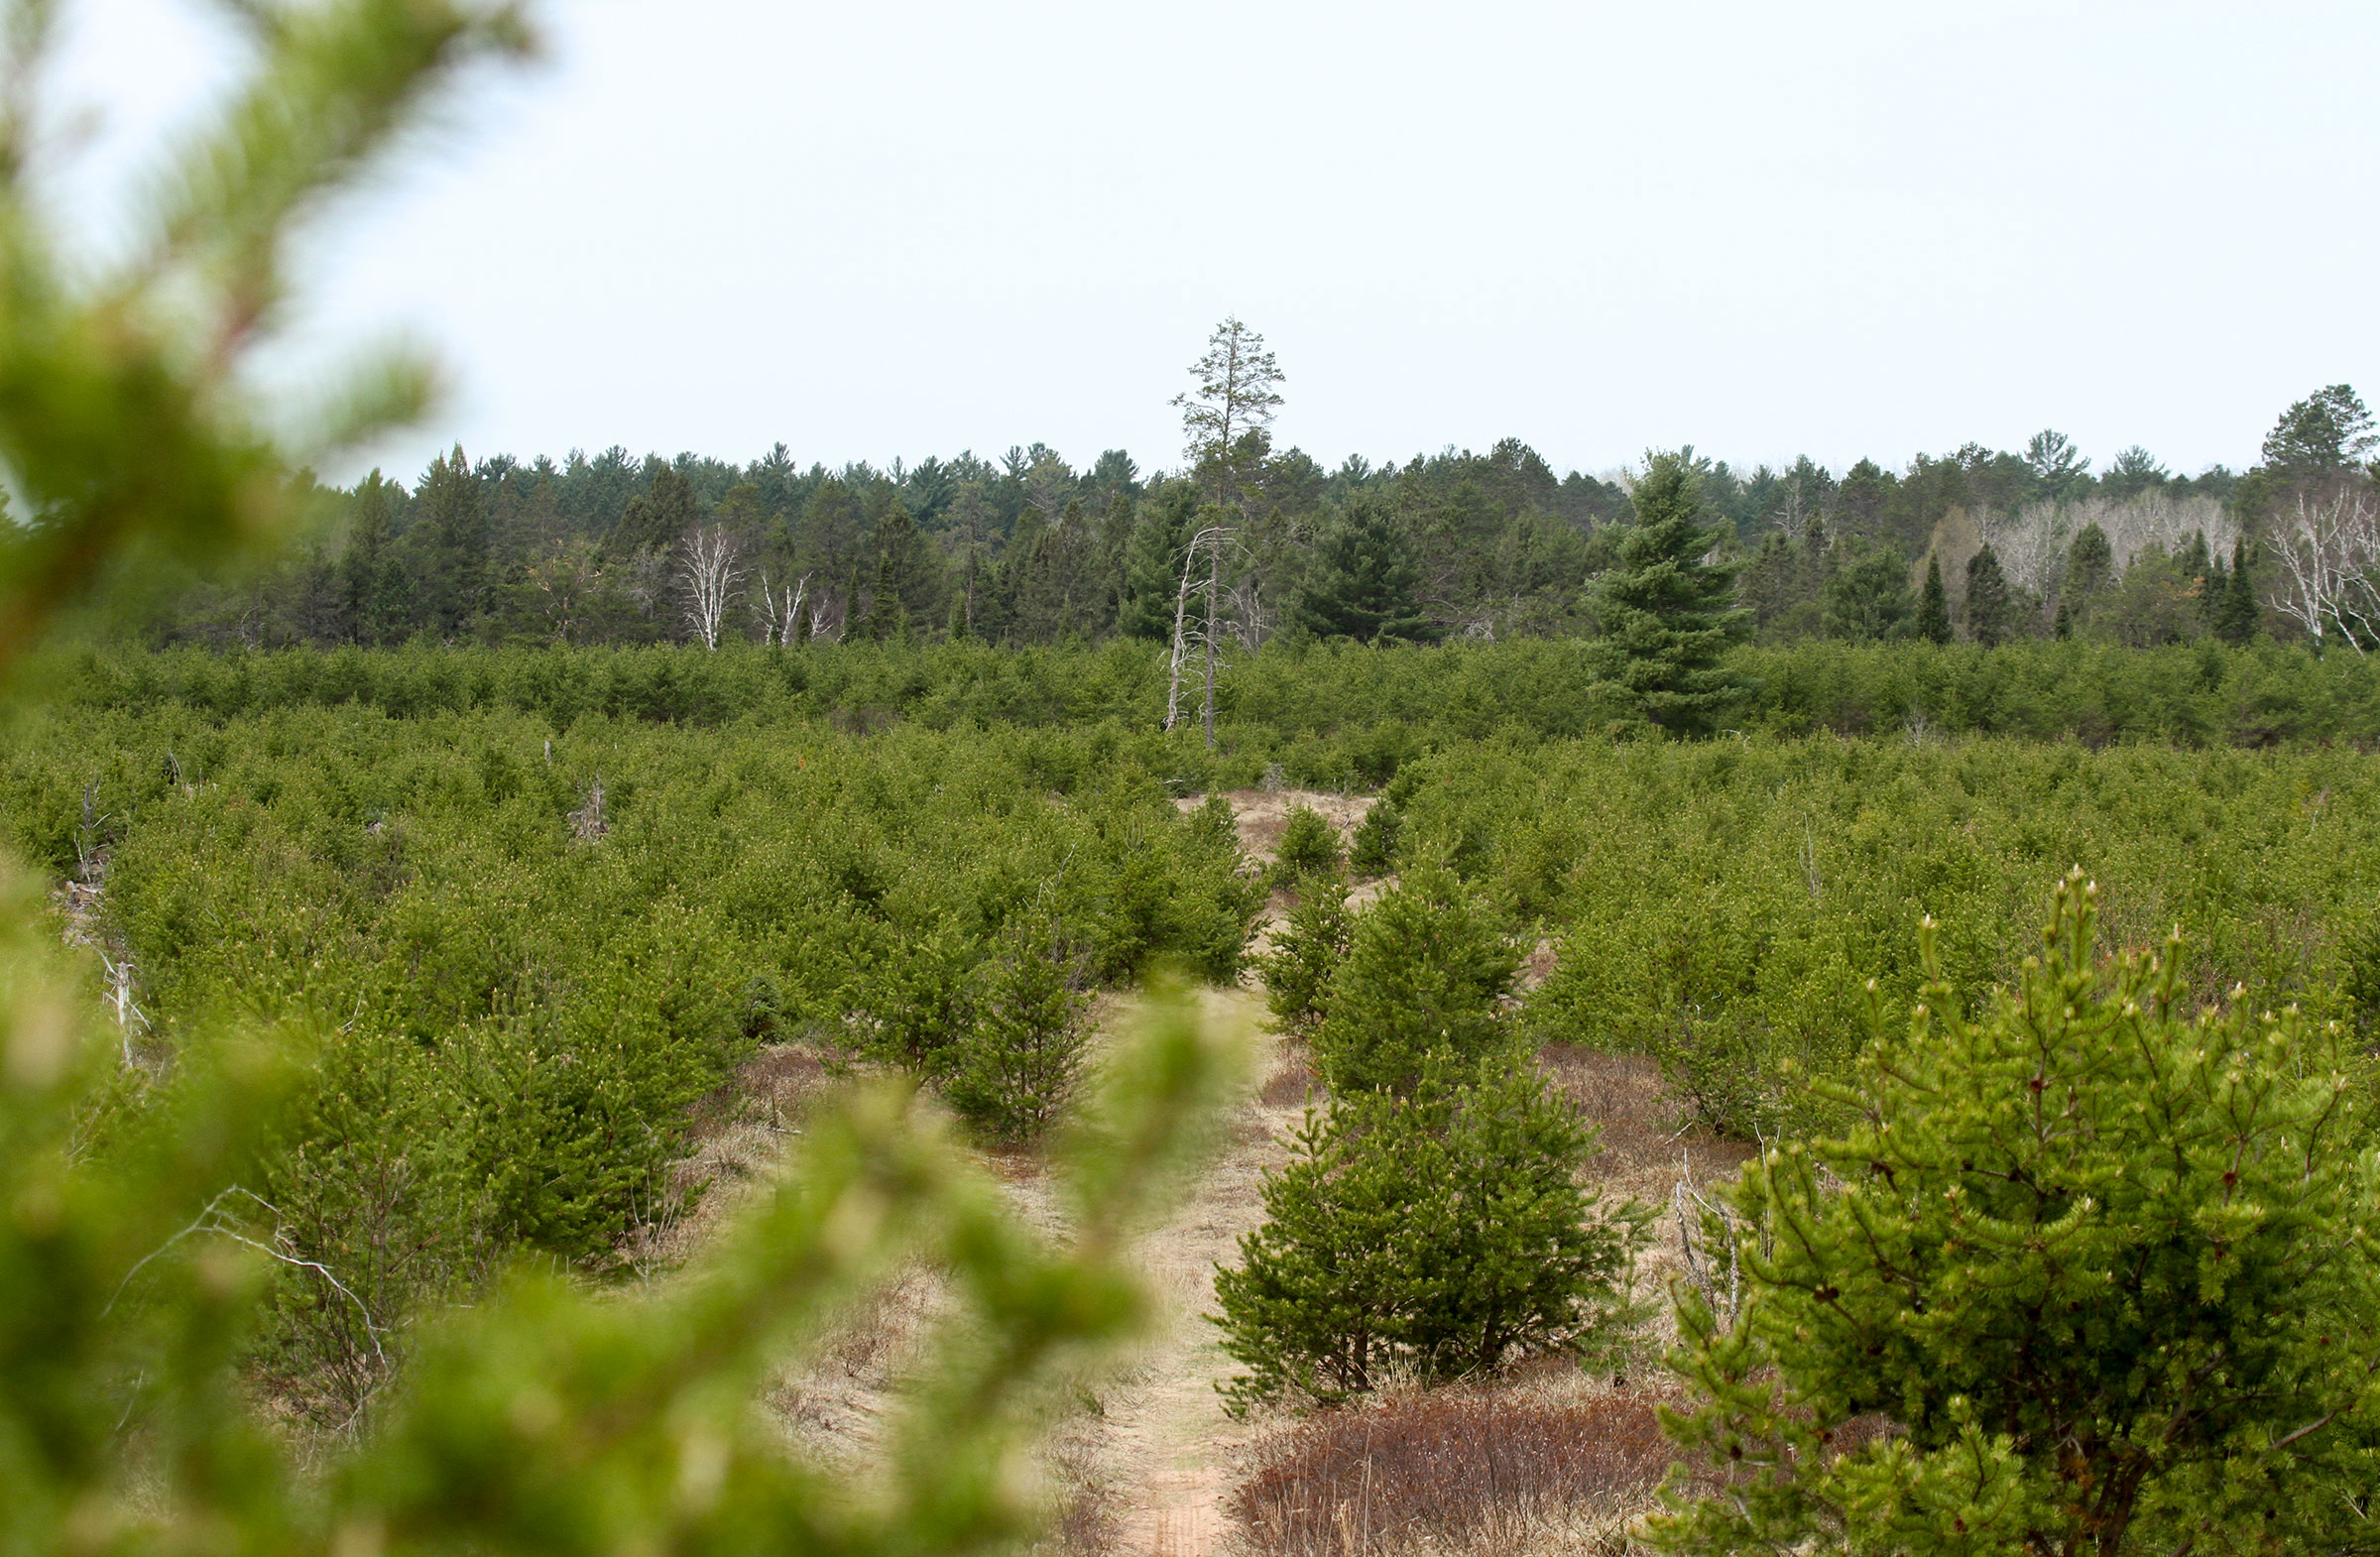 One of the new nesting forests for Kirtland's Warblers in northern Wisconsin. Nick Anich